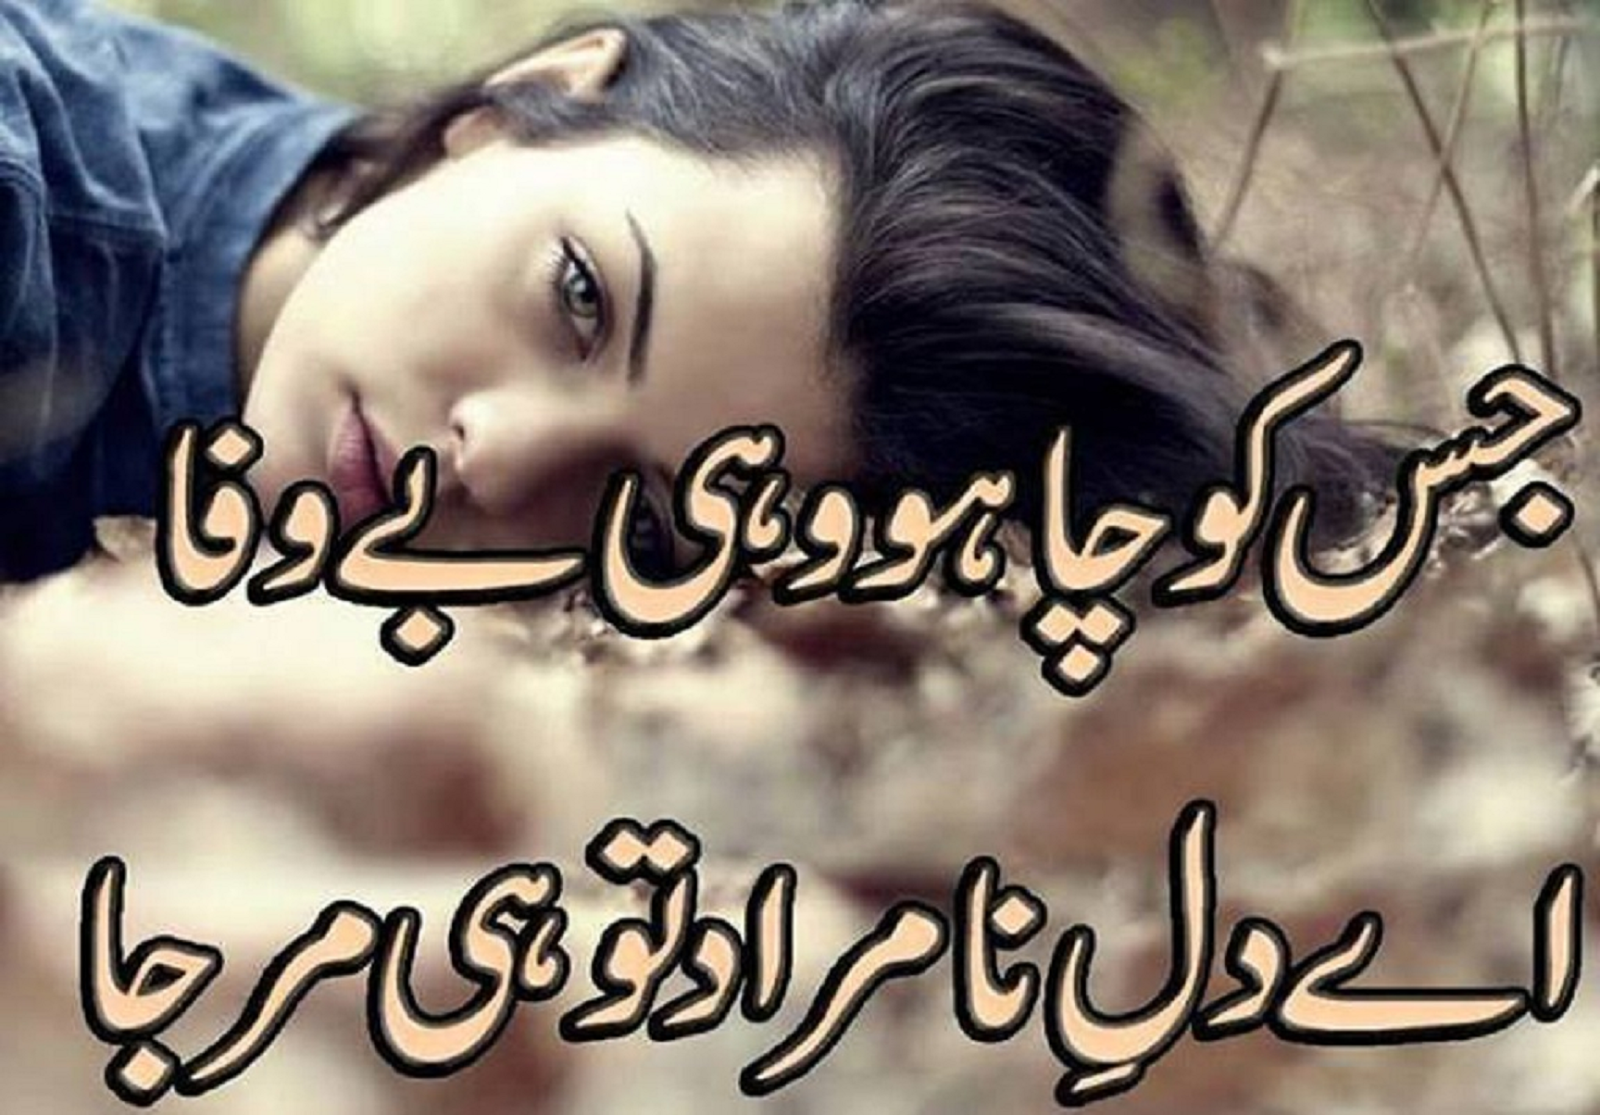 Love Wallpaper Ghazal : Best HD Every Wallpapers: Beautiful Sad Lovely Urdu Poetry Hd Wallpapers